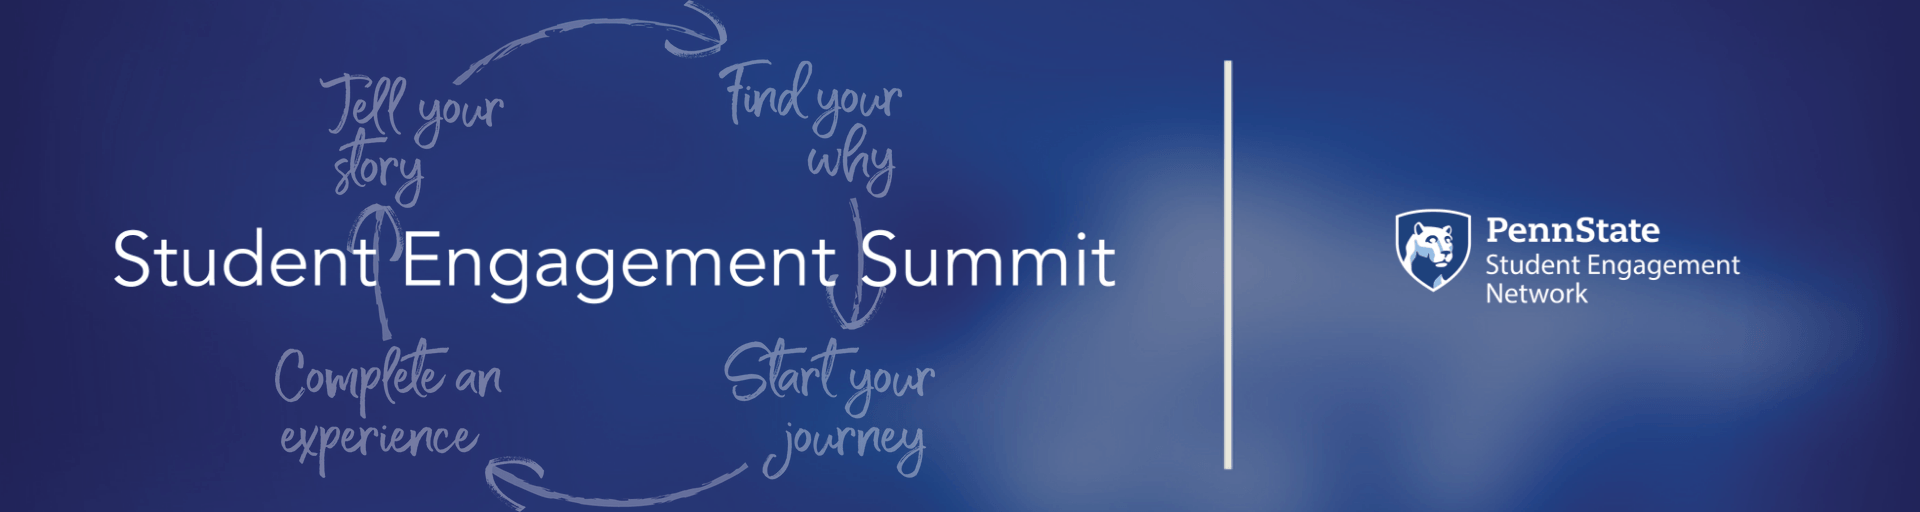 Student Engagement Summit